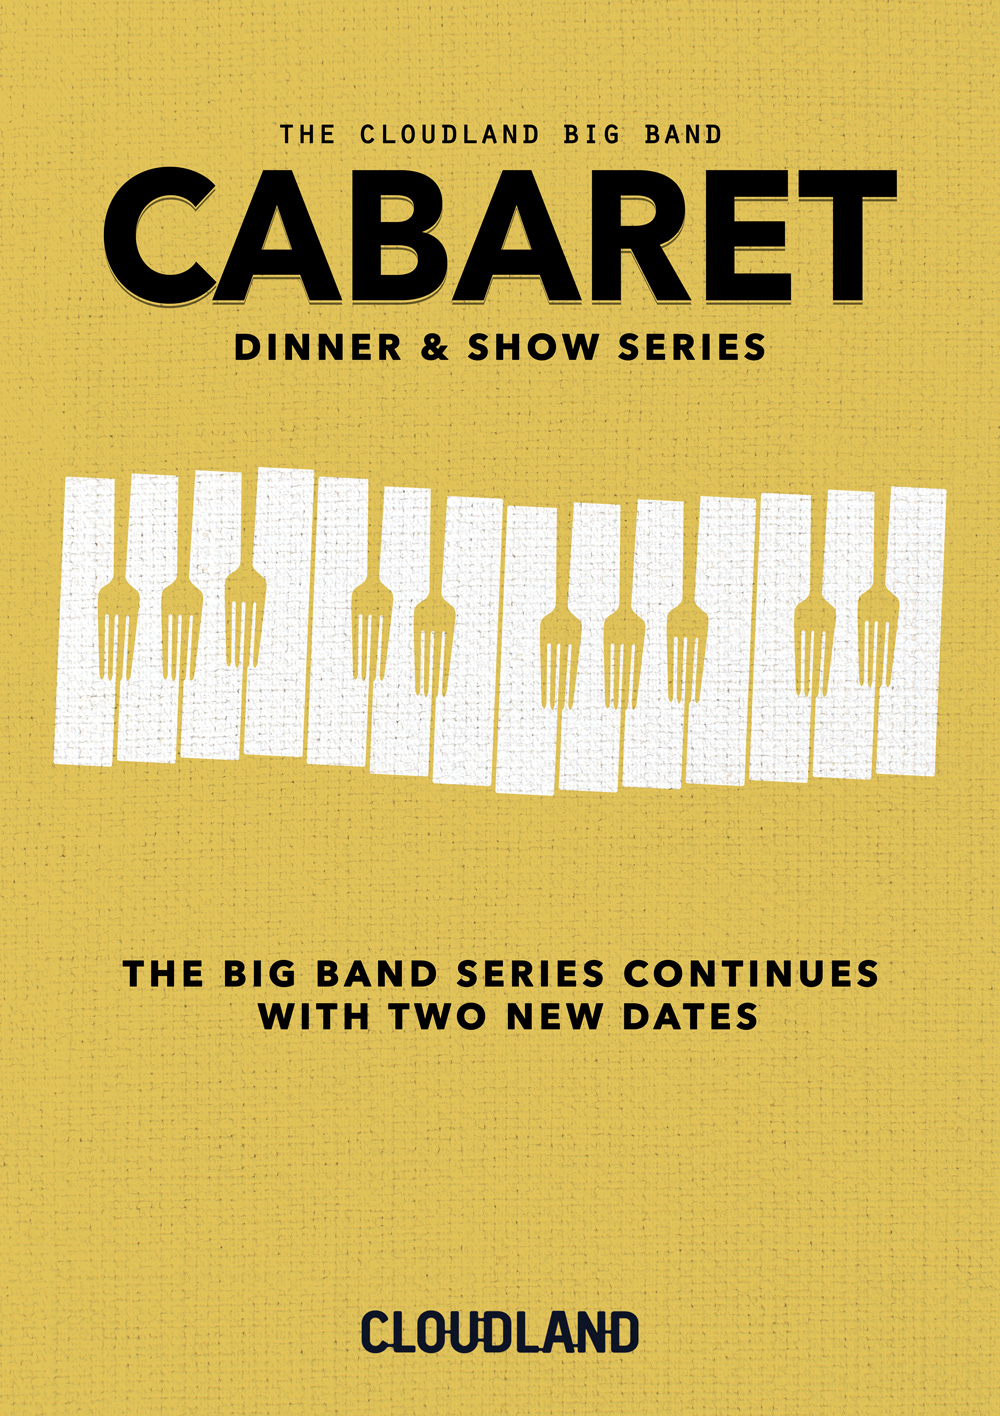 Cloudland Big Band Cabaret